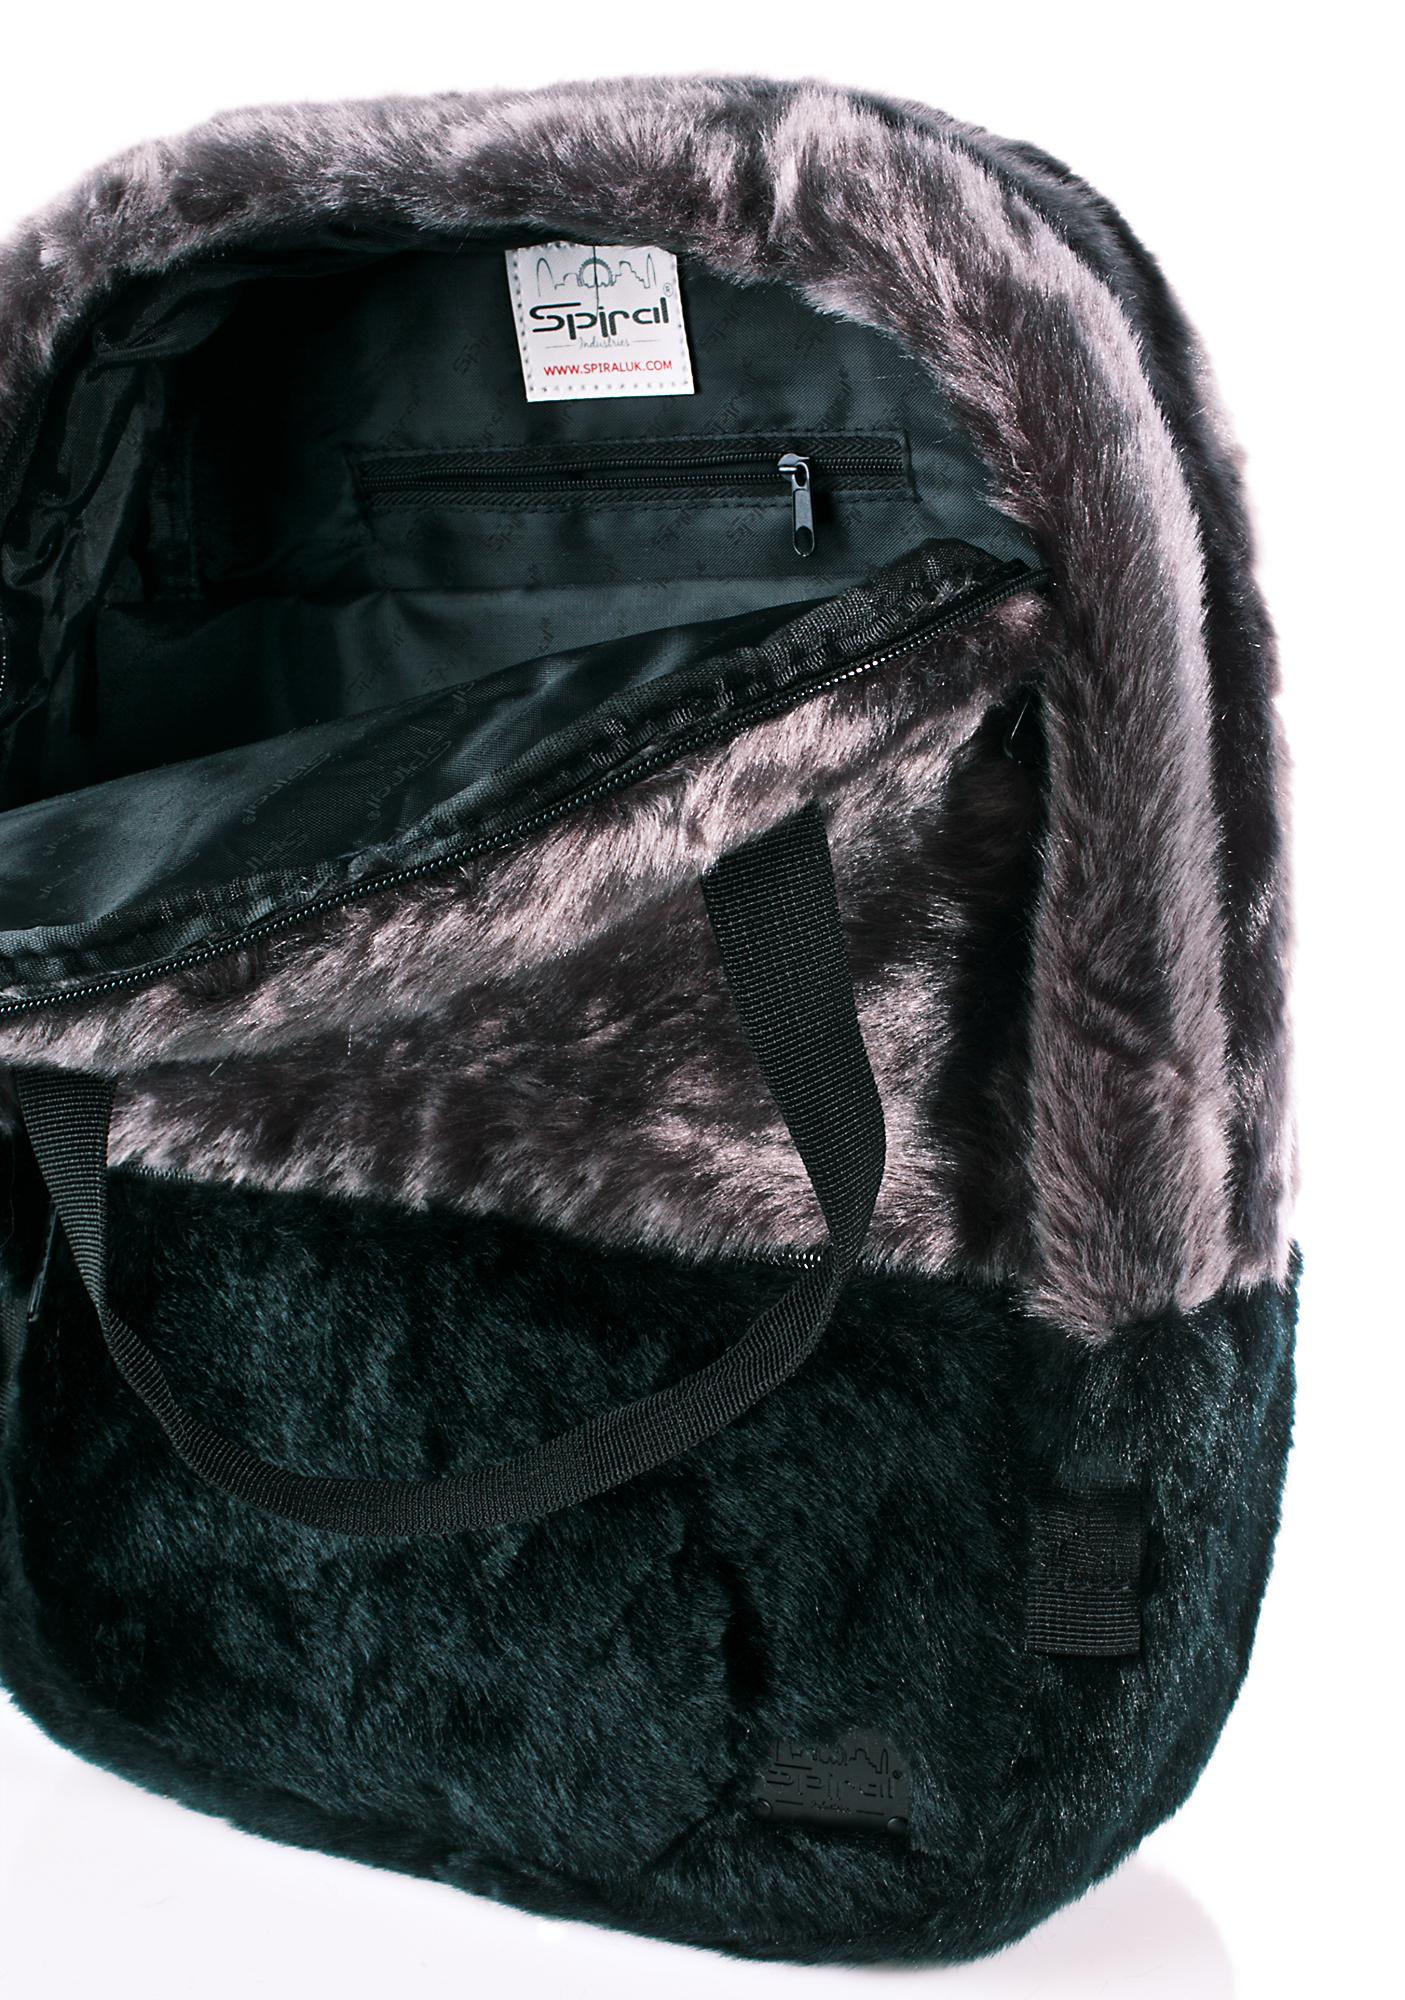 Spiral UK Black Faux Fur Backpack